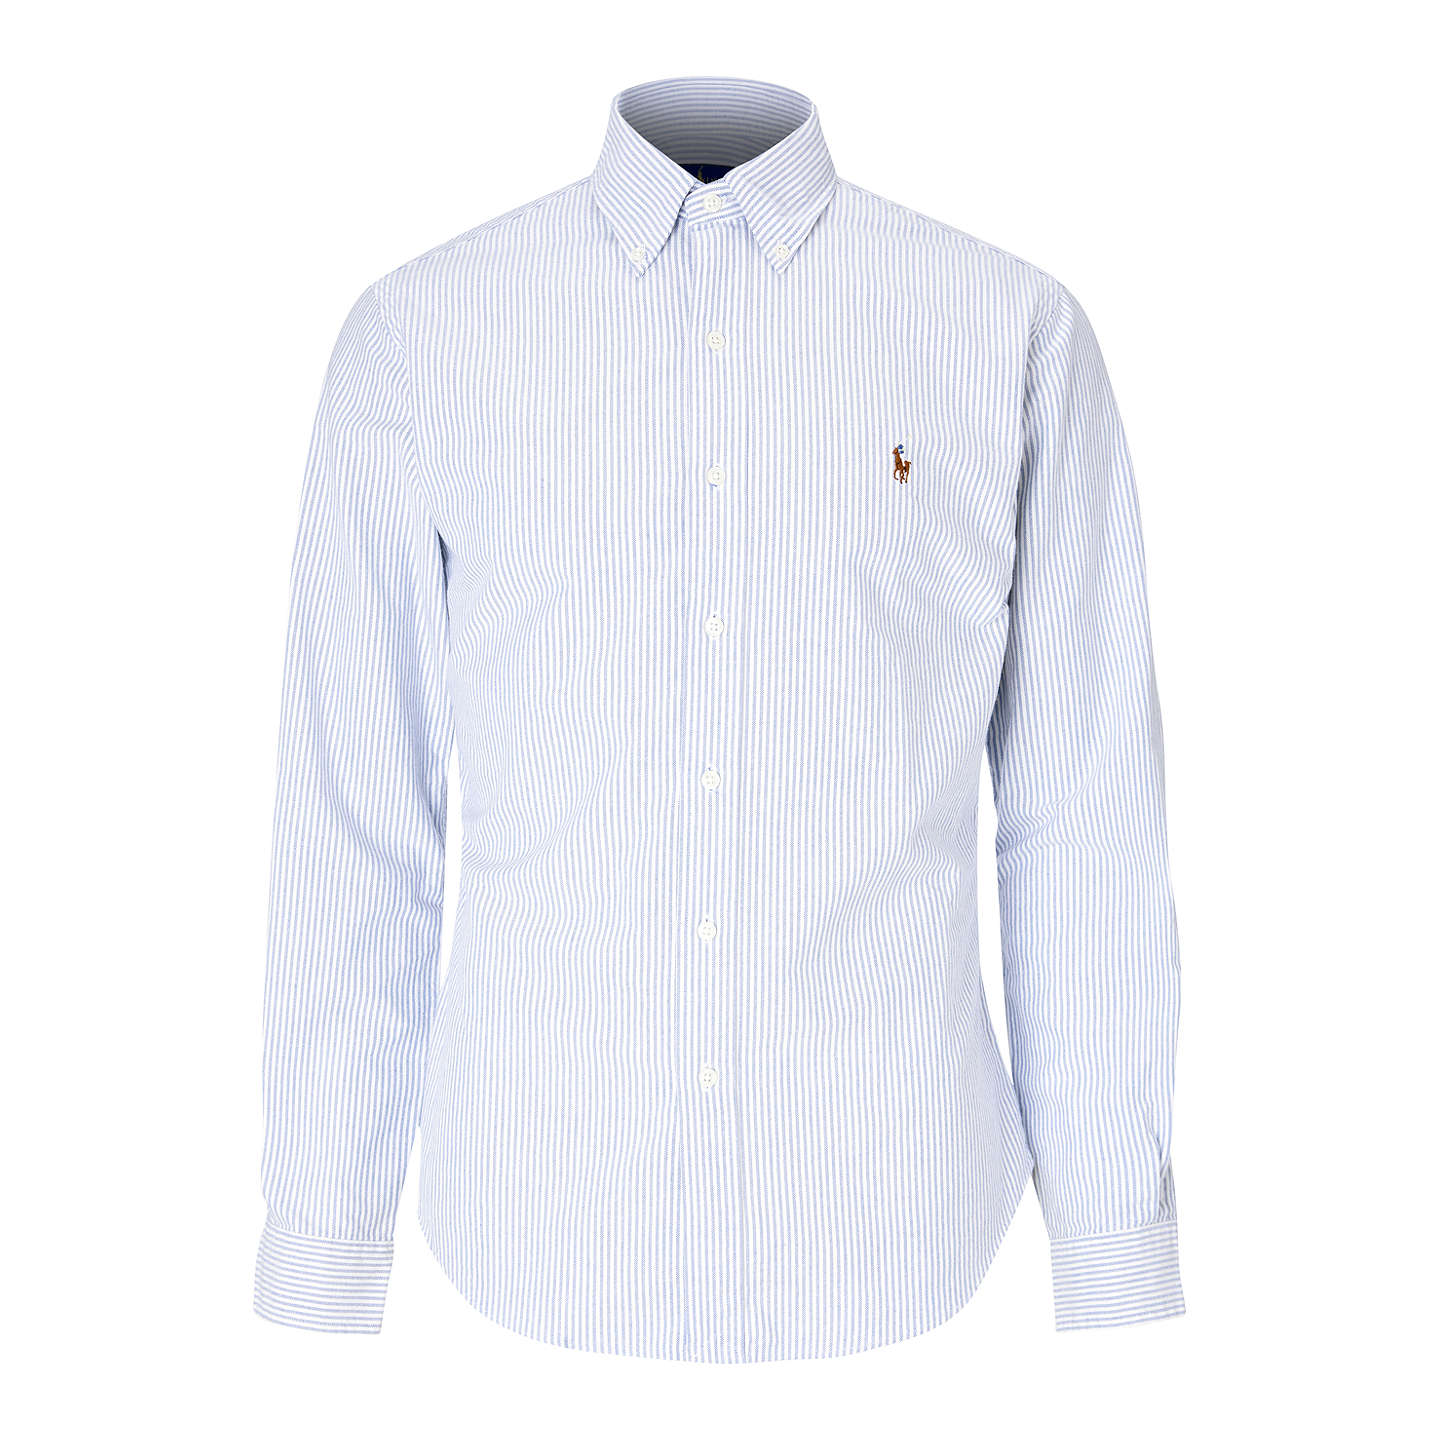 ... BuyPolo Ralph Lauren Slim Fit Striped Oxford Shirt, Blue/White, S  Online at